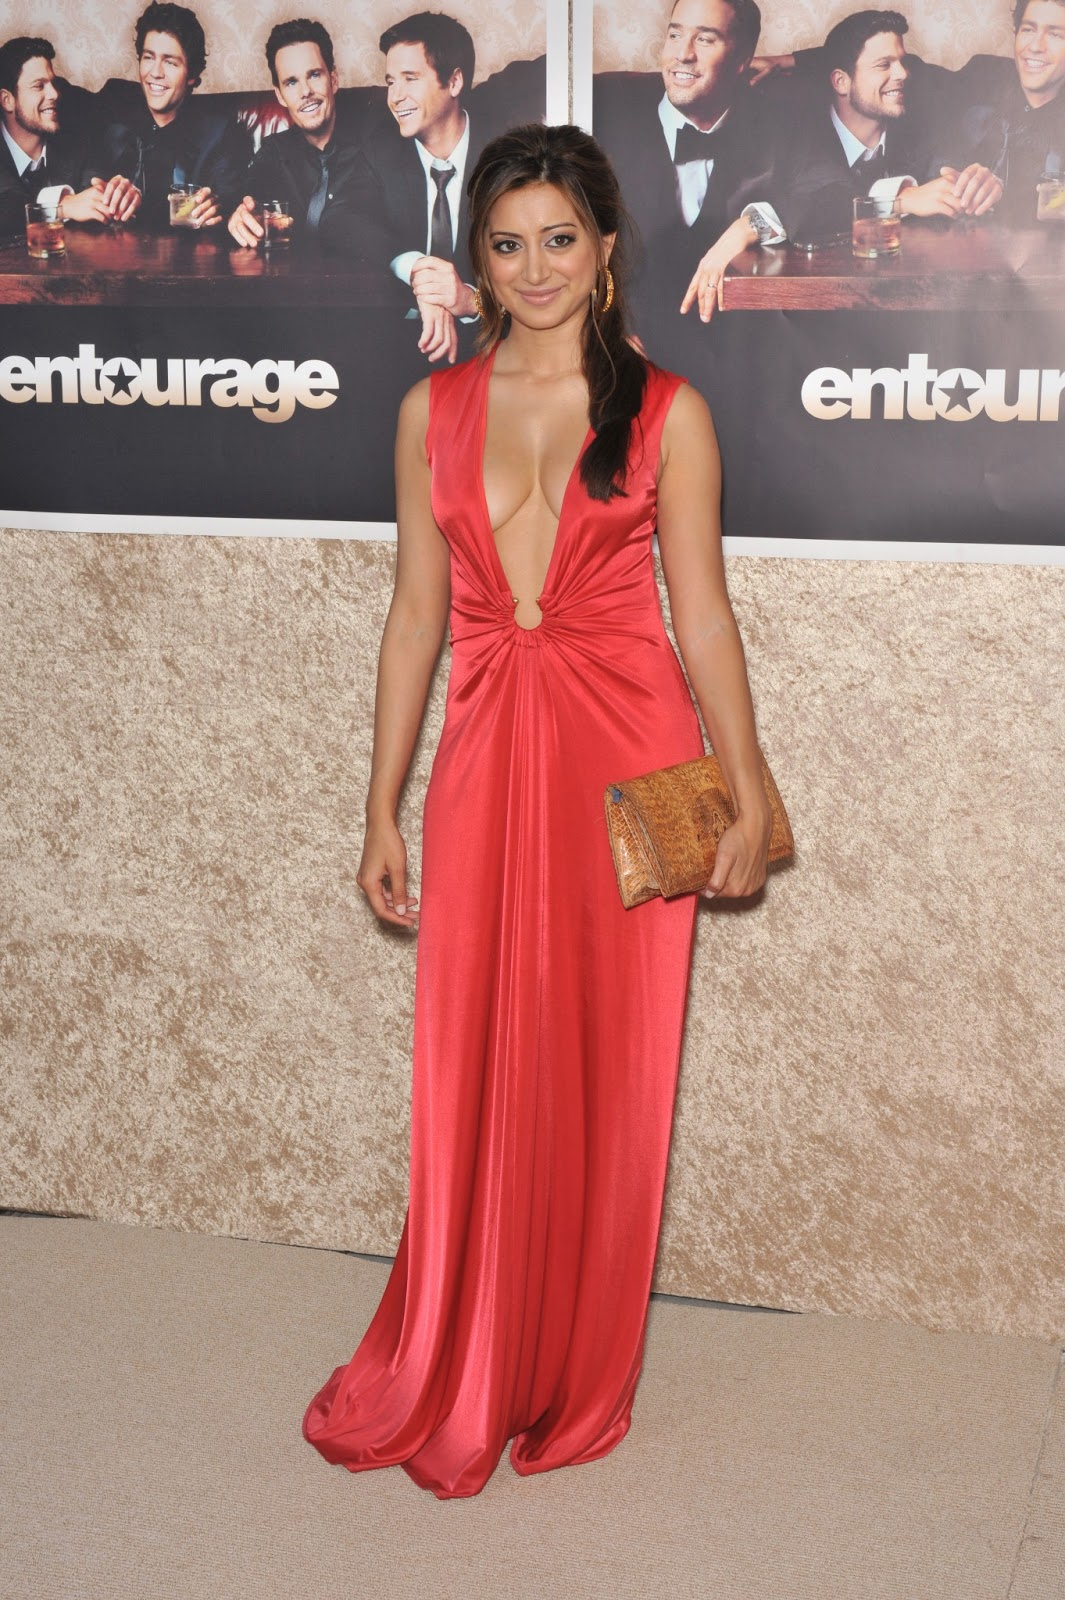 noureen dewulf hot in red dress   hd group sex